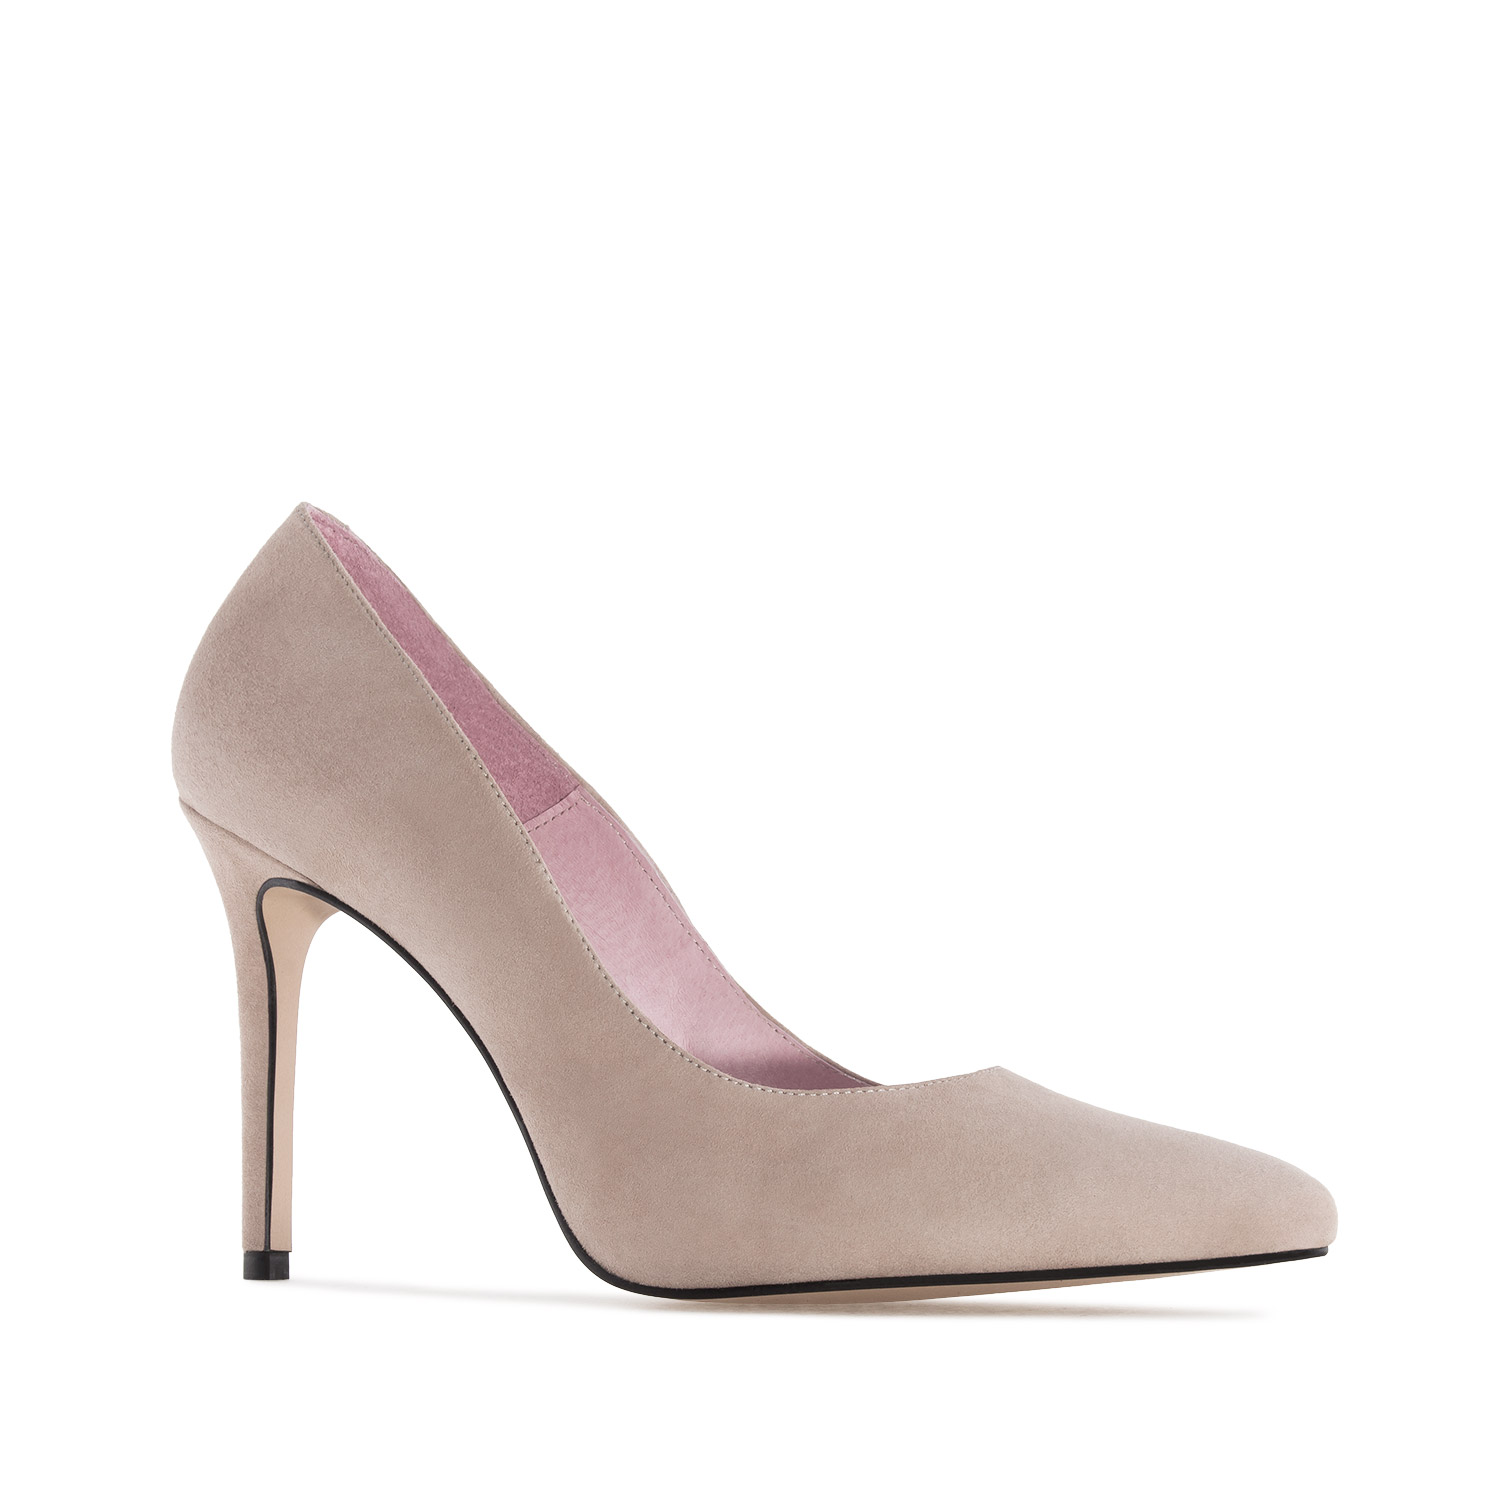 Heeled Shoes in Taupe Suede